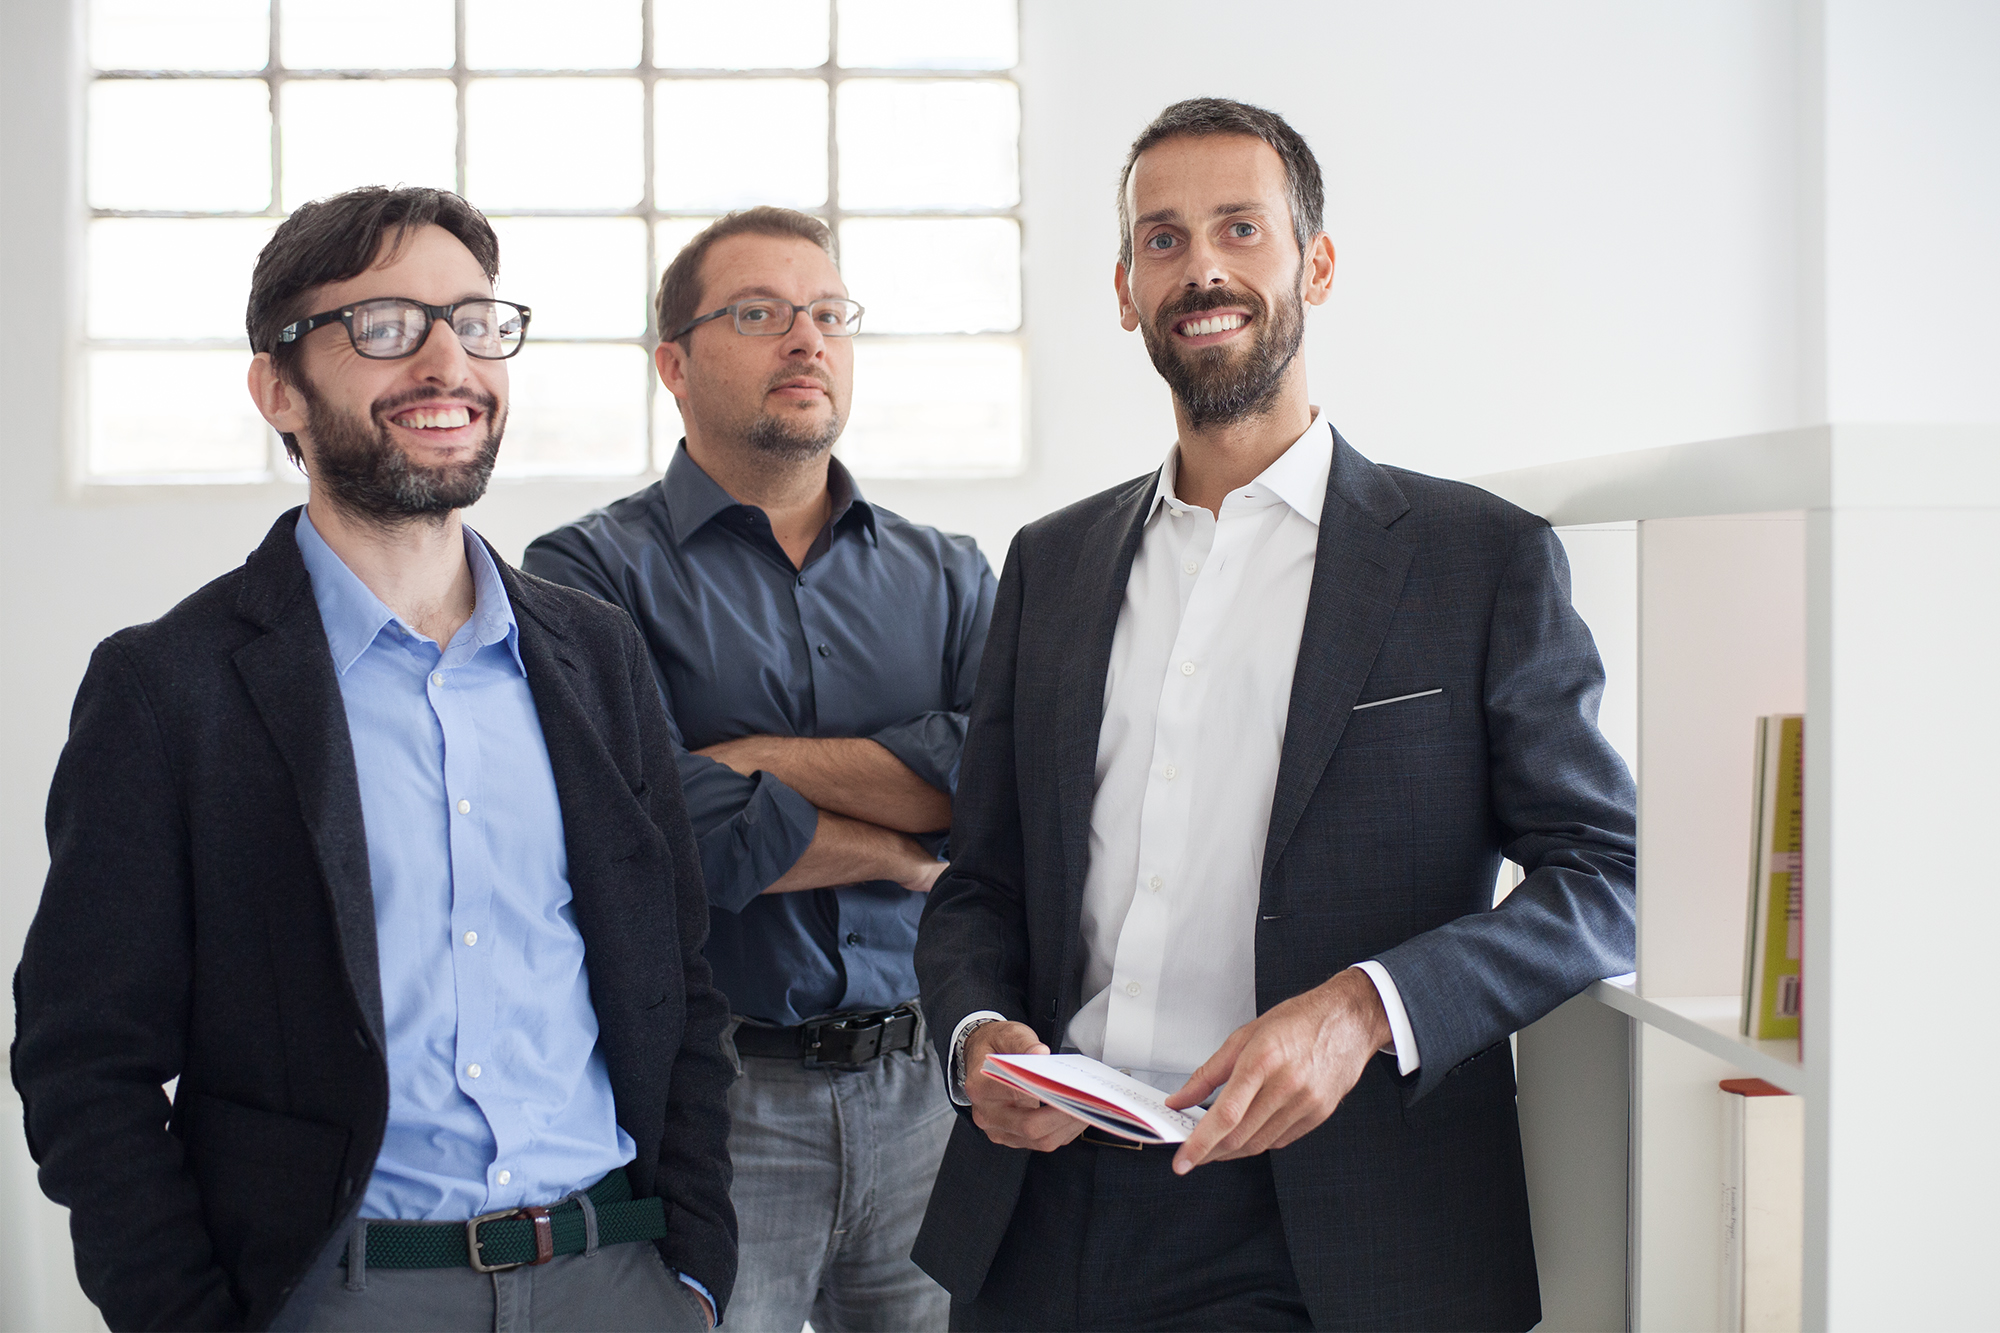 Studio Visuale, i co-founders: Daniele Balcon, Corrado Loschi, Francesco Pia